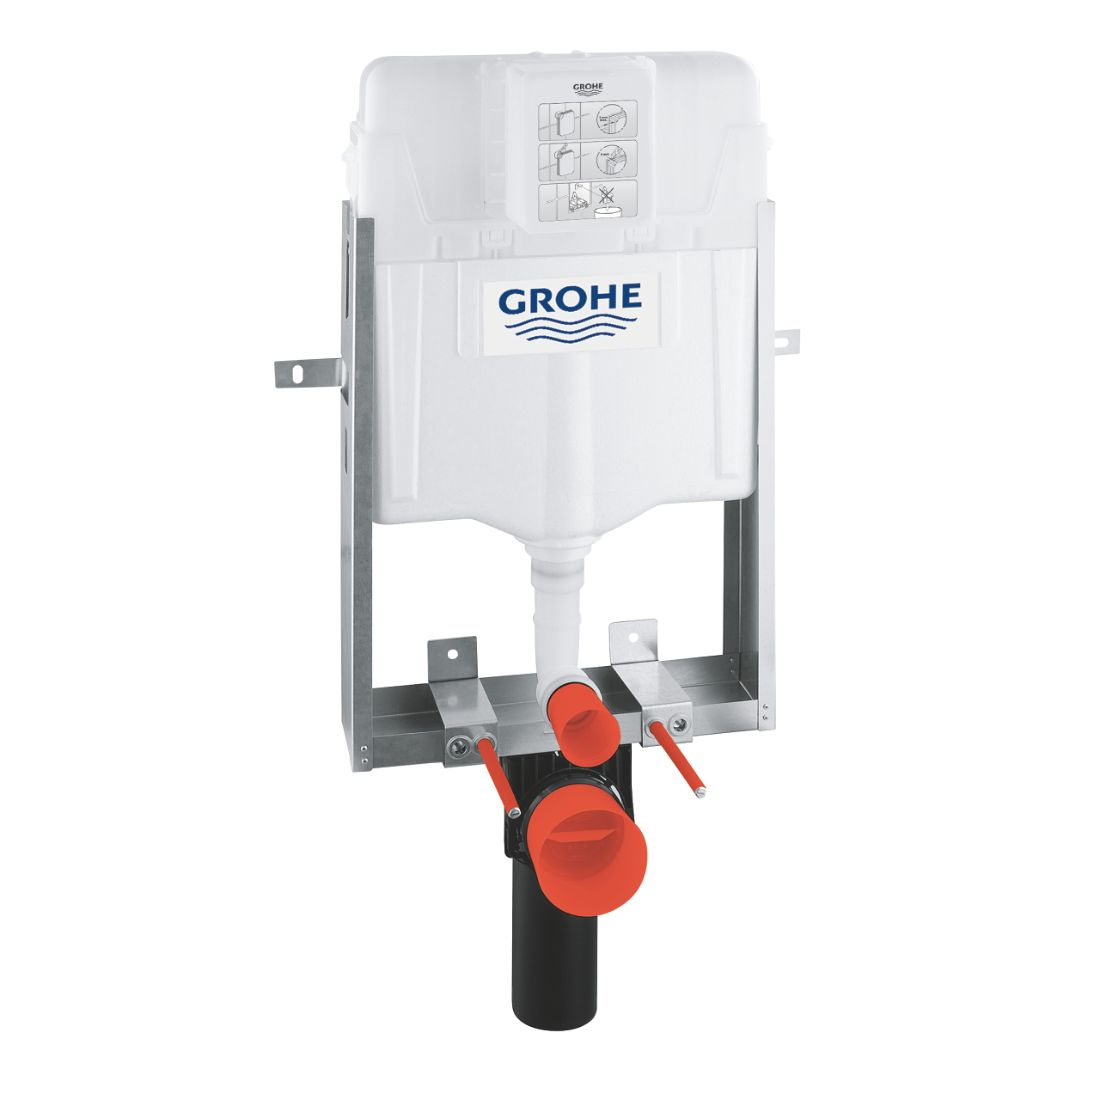 Grohe 39165000 Uniset Element for WC